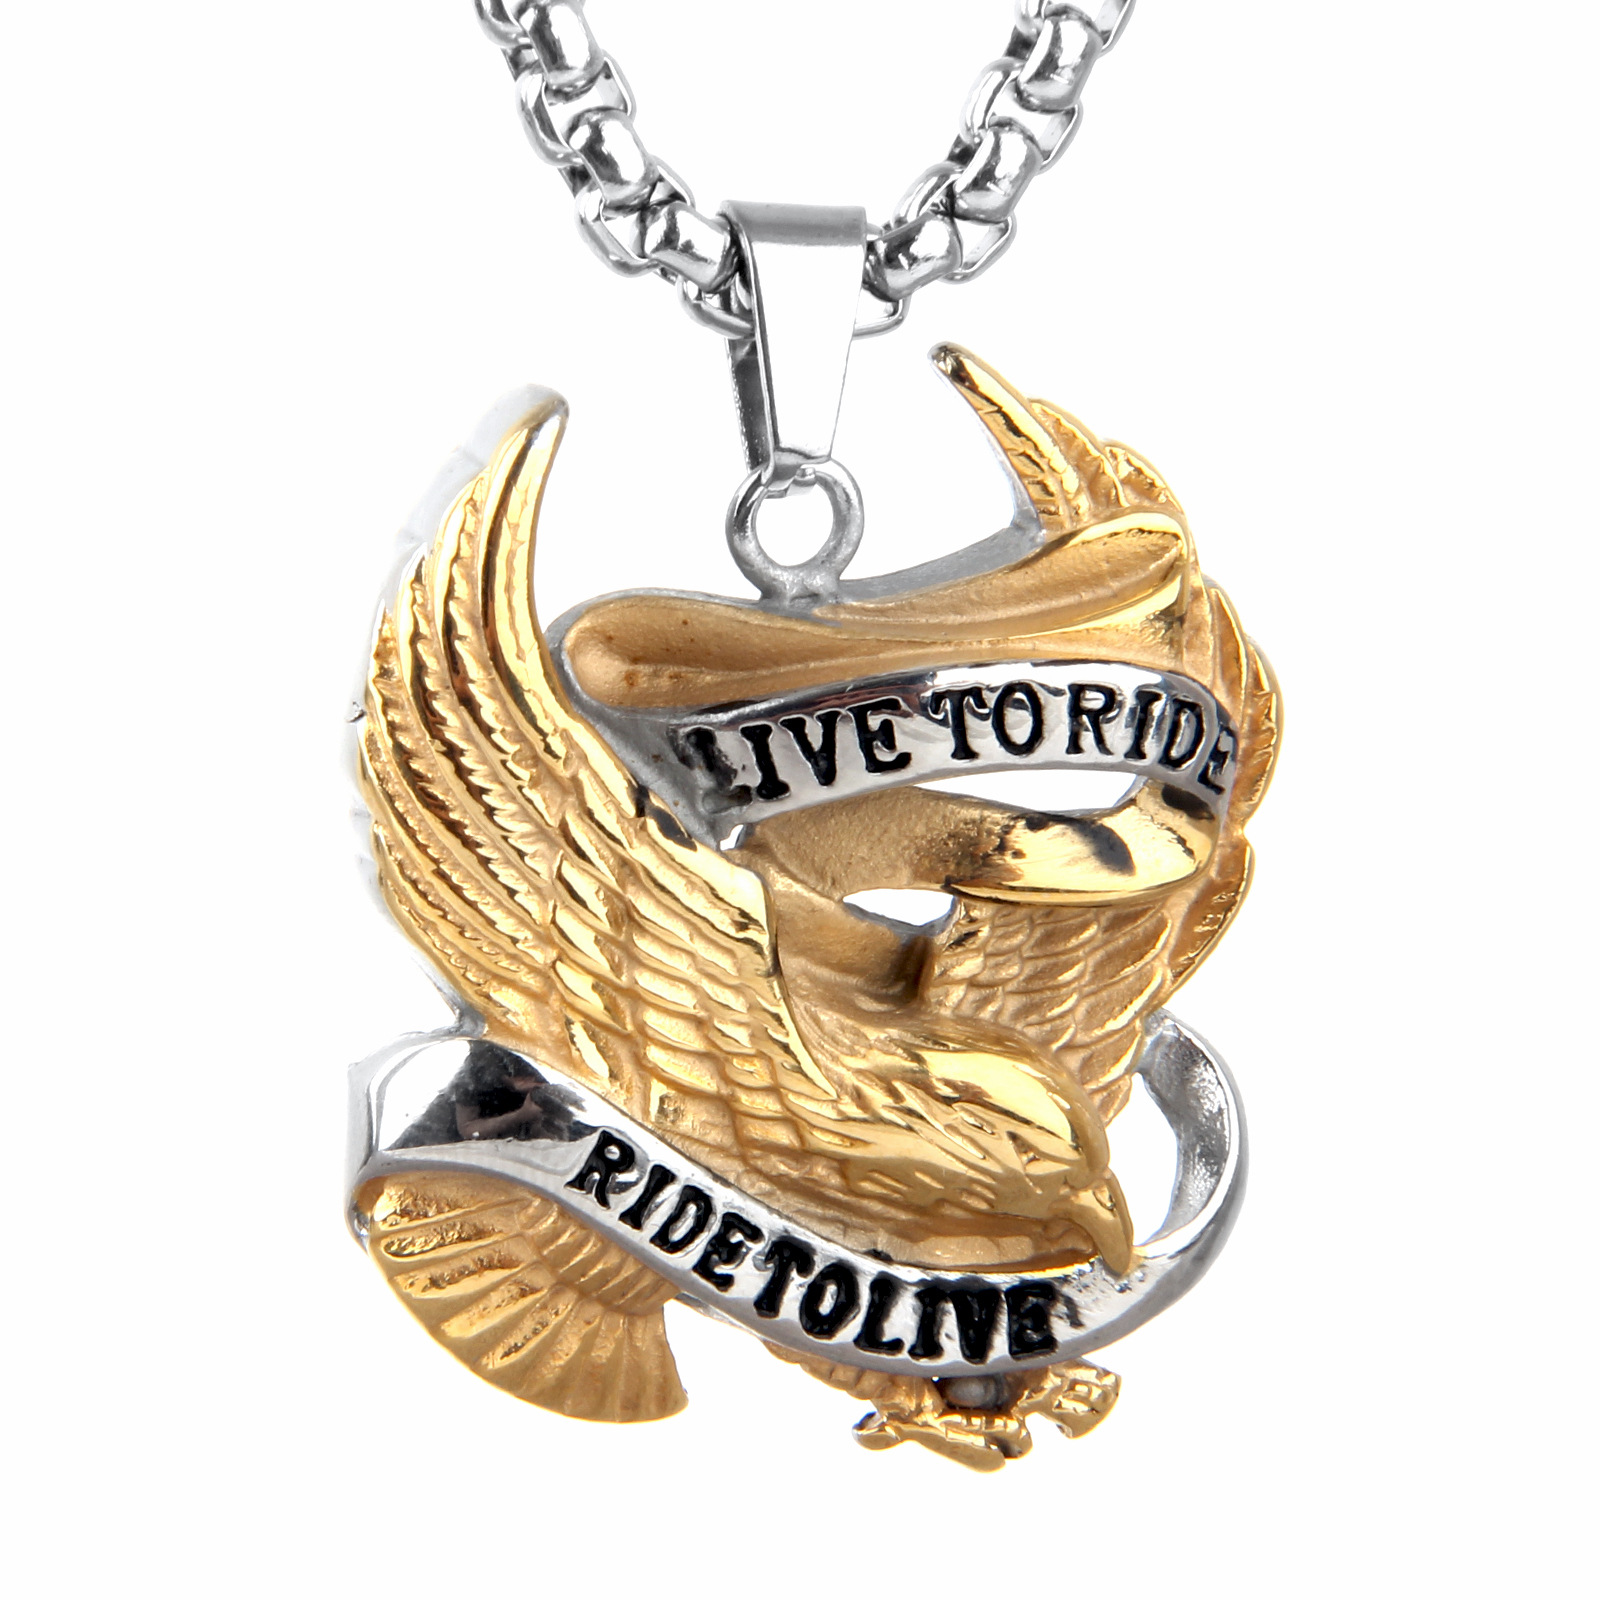 shipping free today i watches accent isabella eagle h overstock product diamond collection jewelry pendant gold yellow men mens s